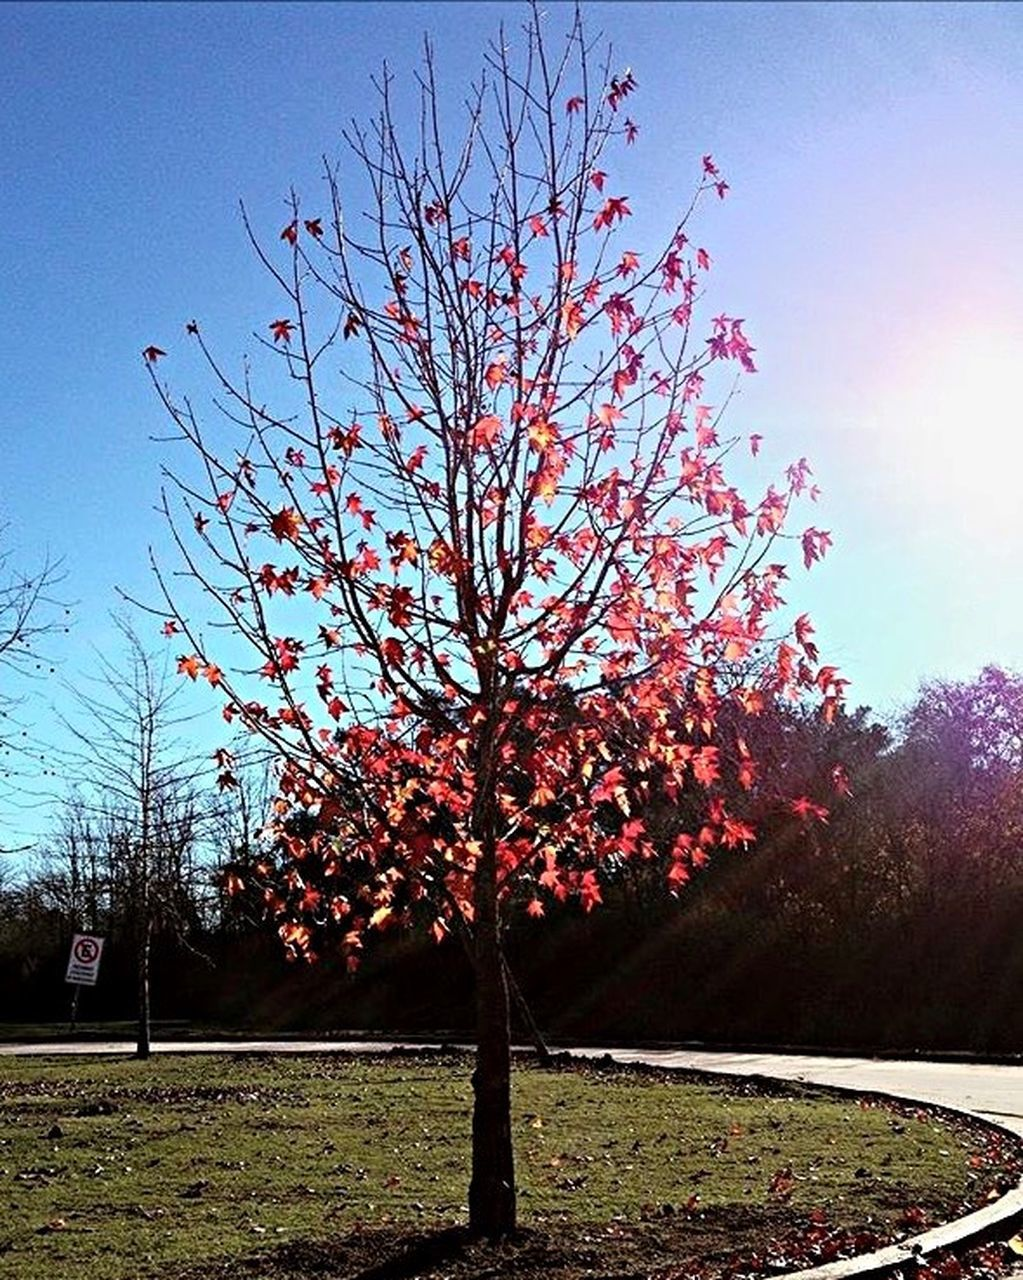 tree, tranquility, tranquil scene, beauty in nature, nature, branch, bare tree, growth, outdoors, day, scenics, sky, autumn, no people, landscape, flower, freshness